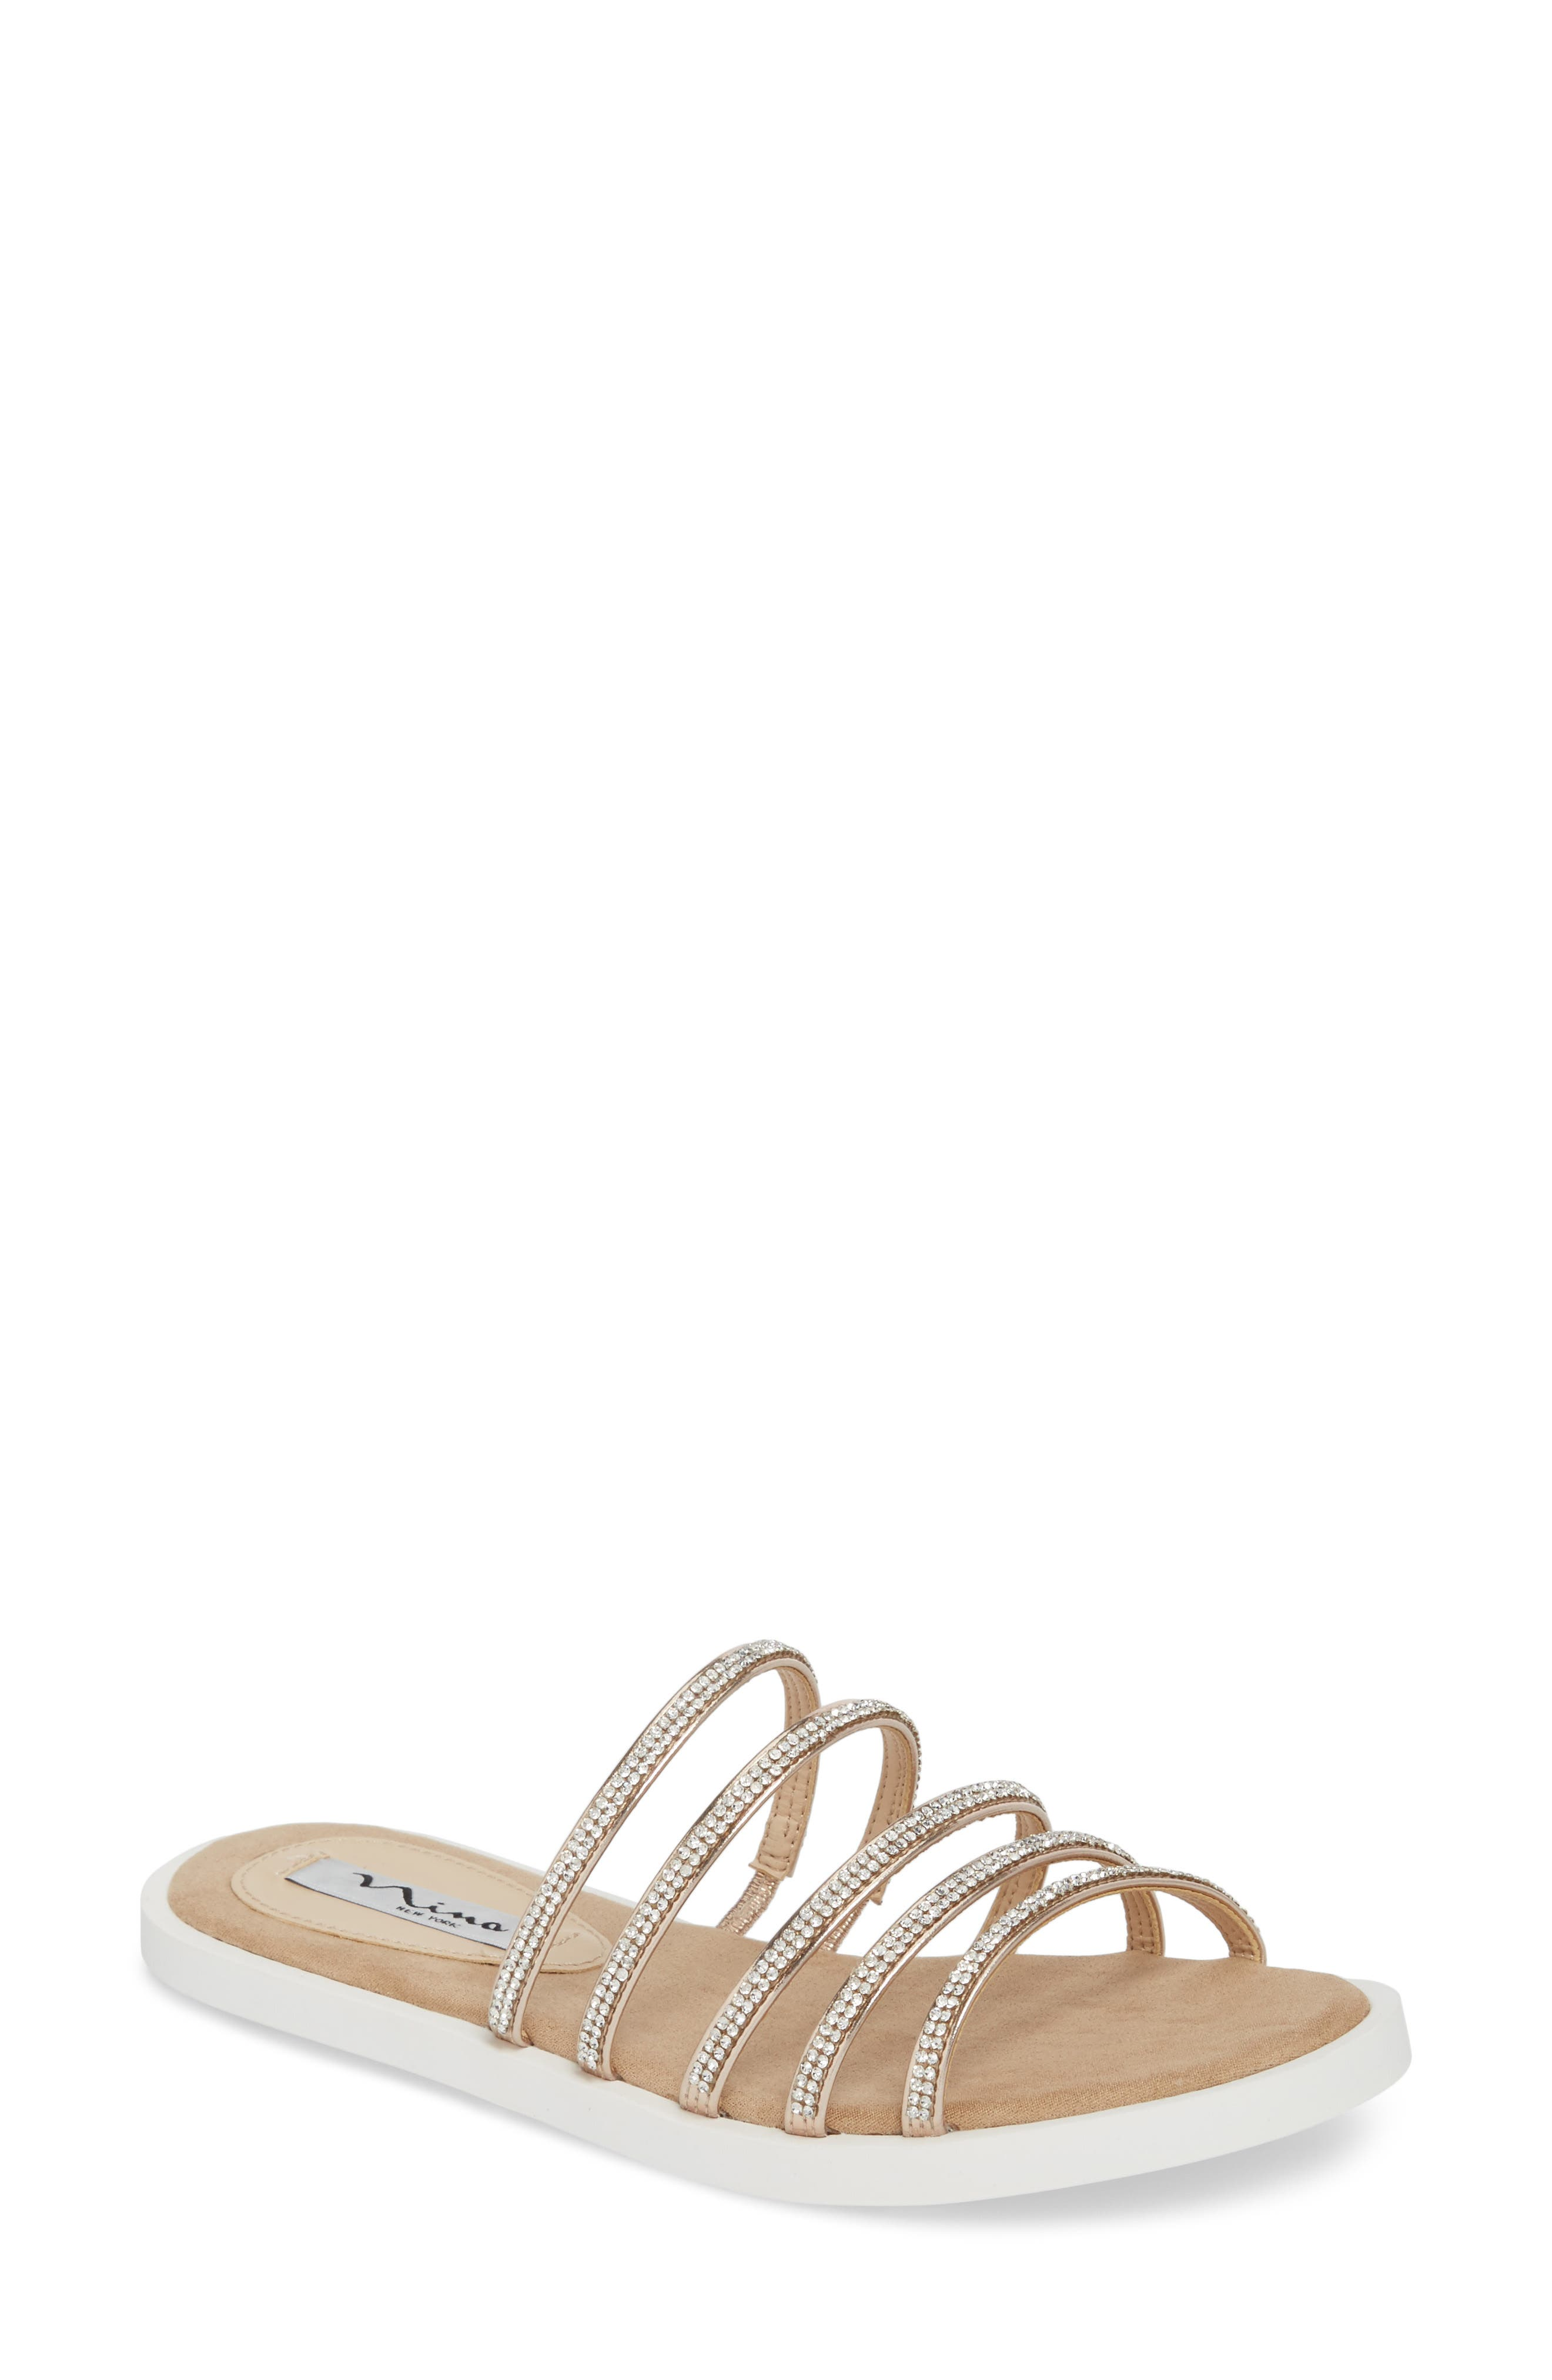 Sabrina Sandal,                             Main thumbnail 1, color,                             Rose Gold Fabric